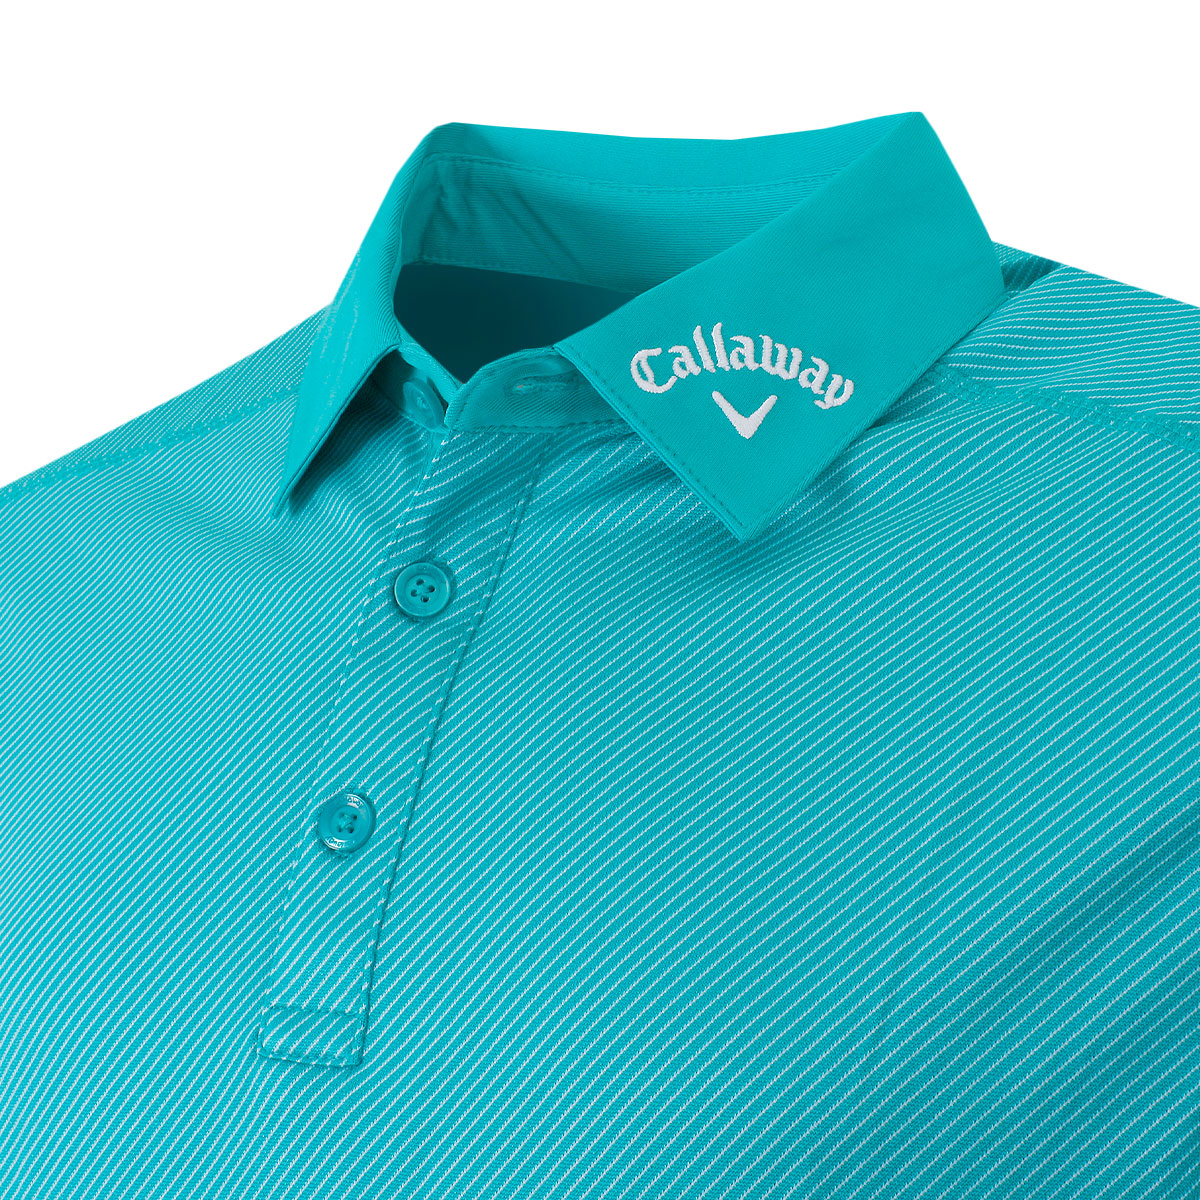 Callaway-Golf-Mens-Denim-Jacquard-Dri-Fit-Performance-Polo-Shirt-37-OFF-RRP thumbnail 16